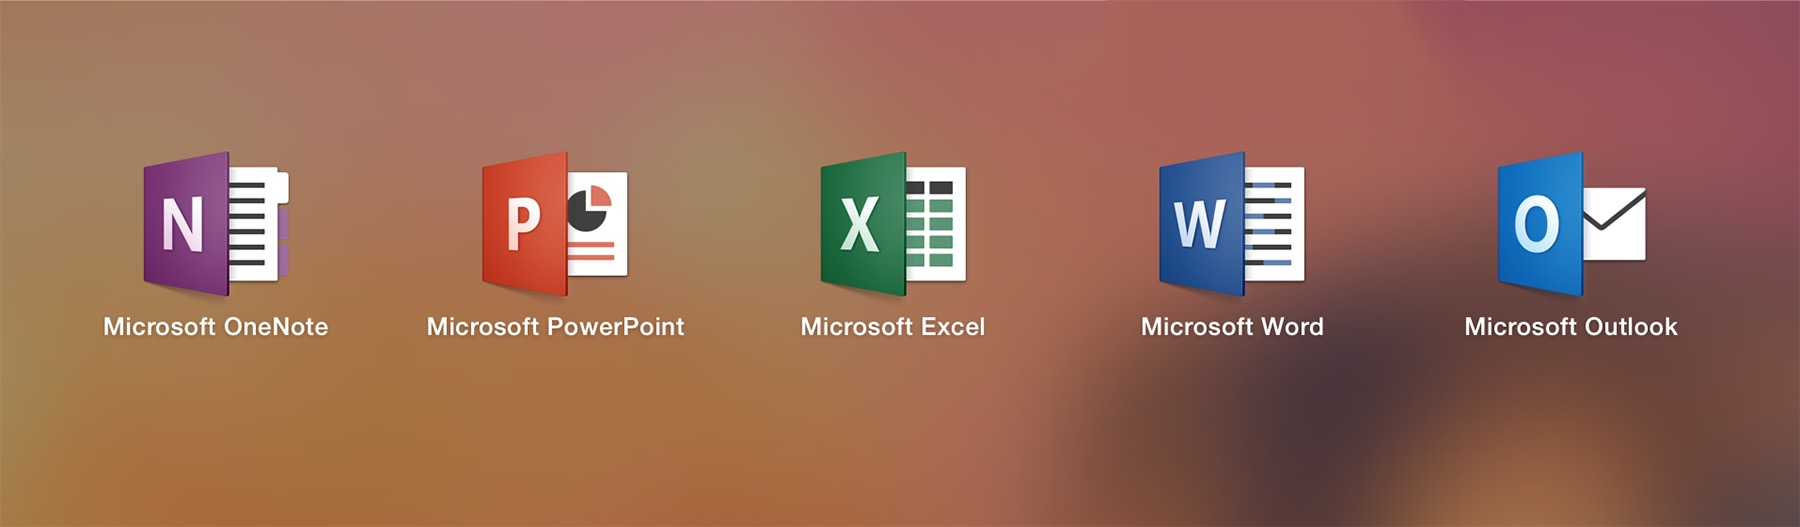 Microsoft Office 2016 Apple OS X Mac iOS Yosemite 08